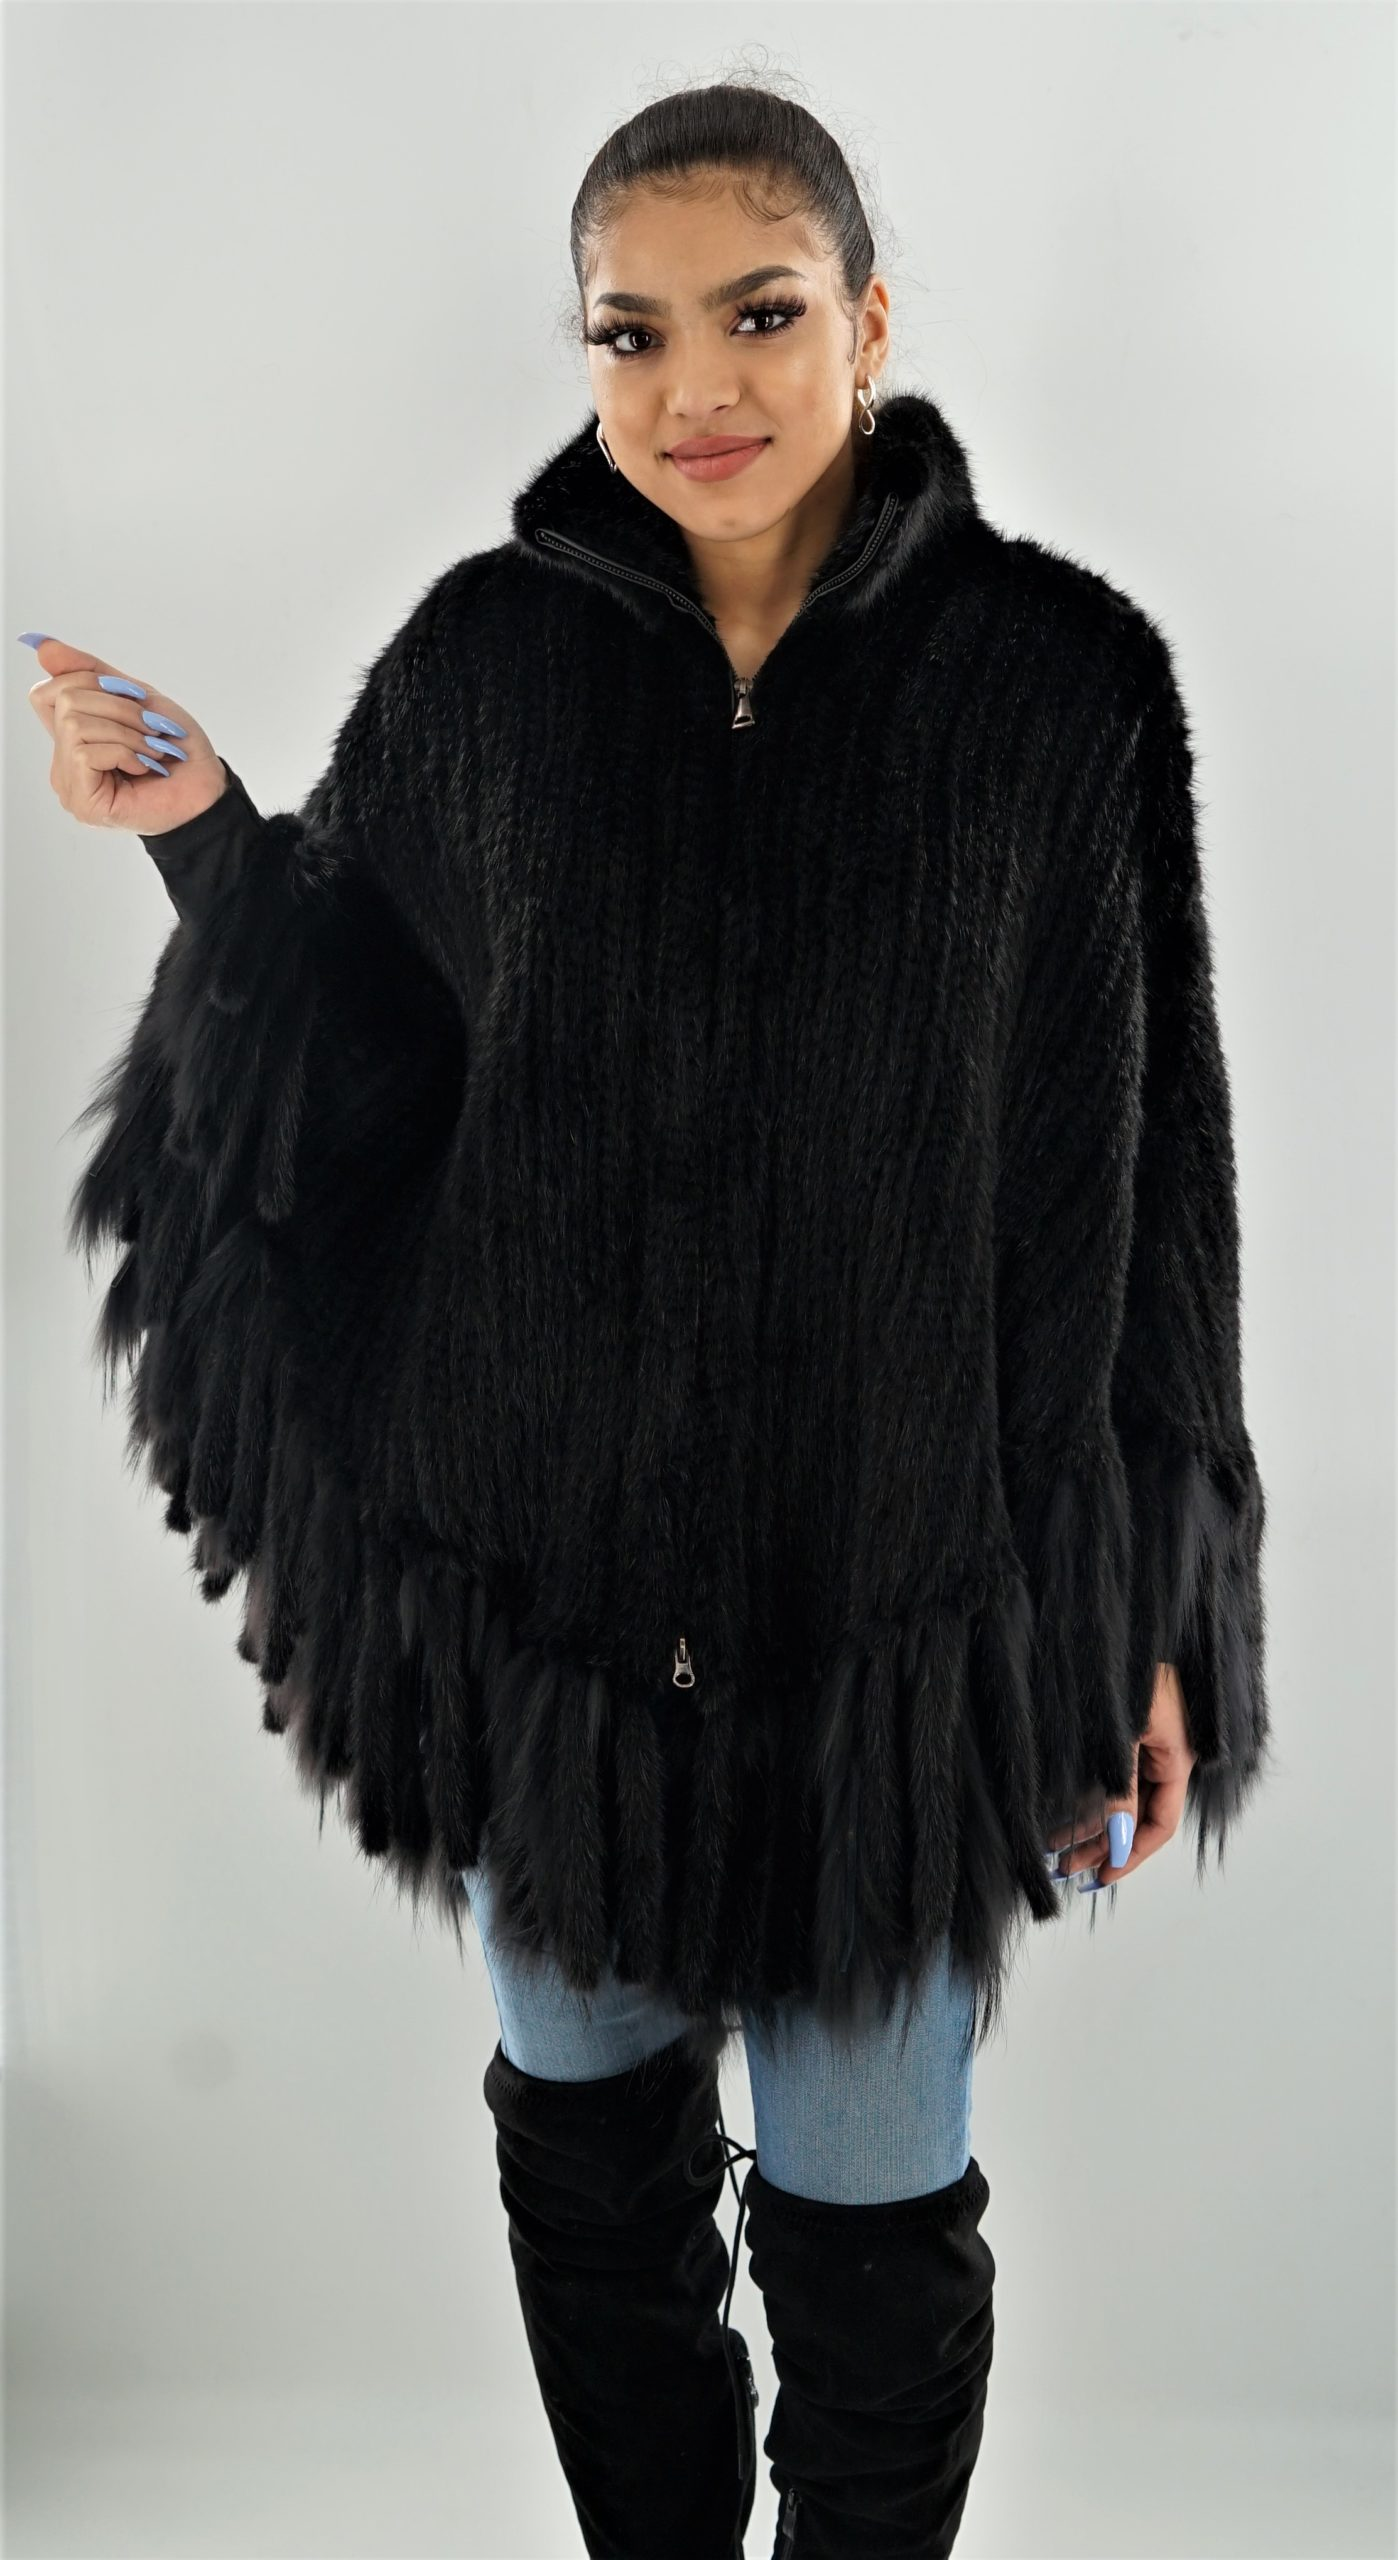 Black Knit Mink Poncho with Fringes